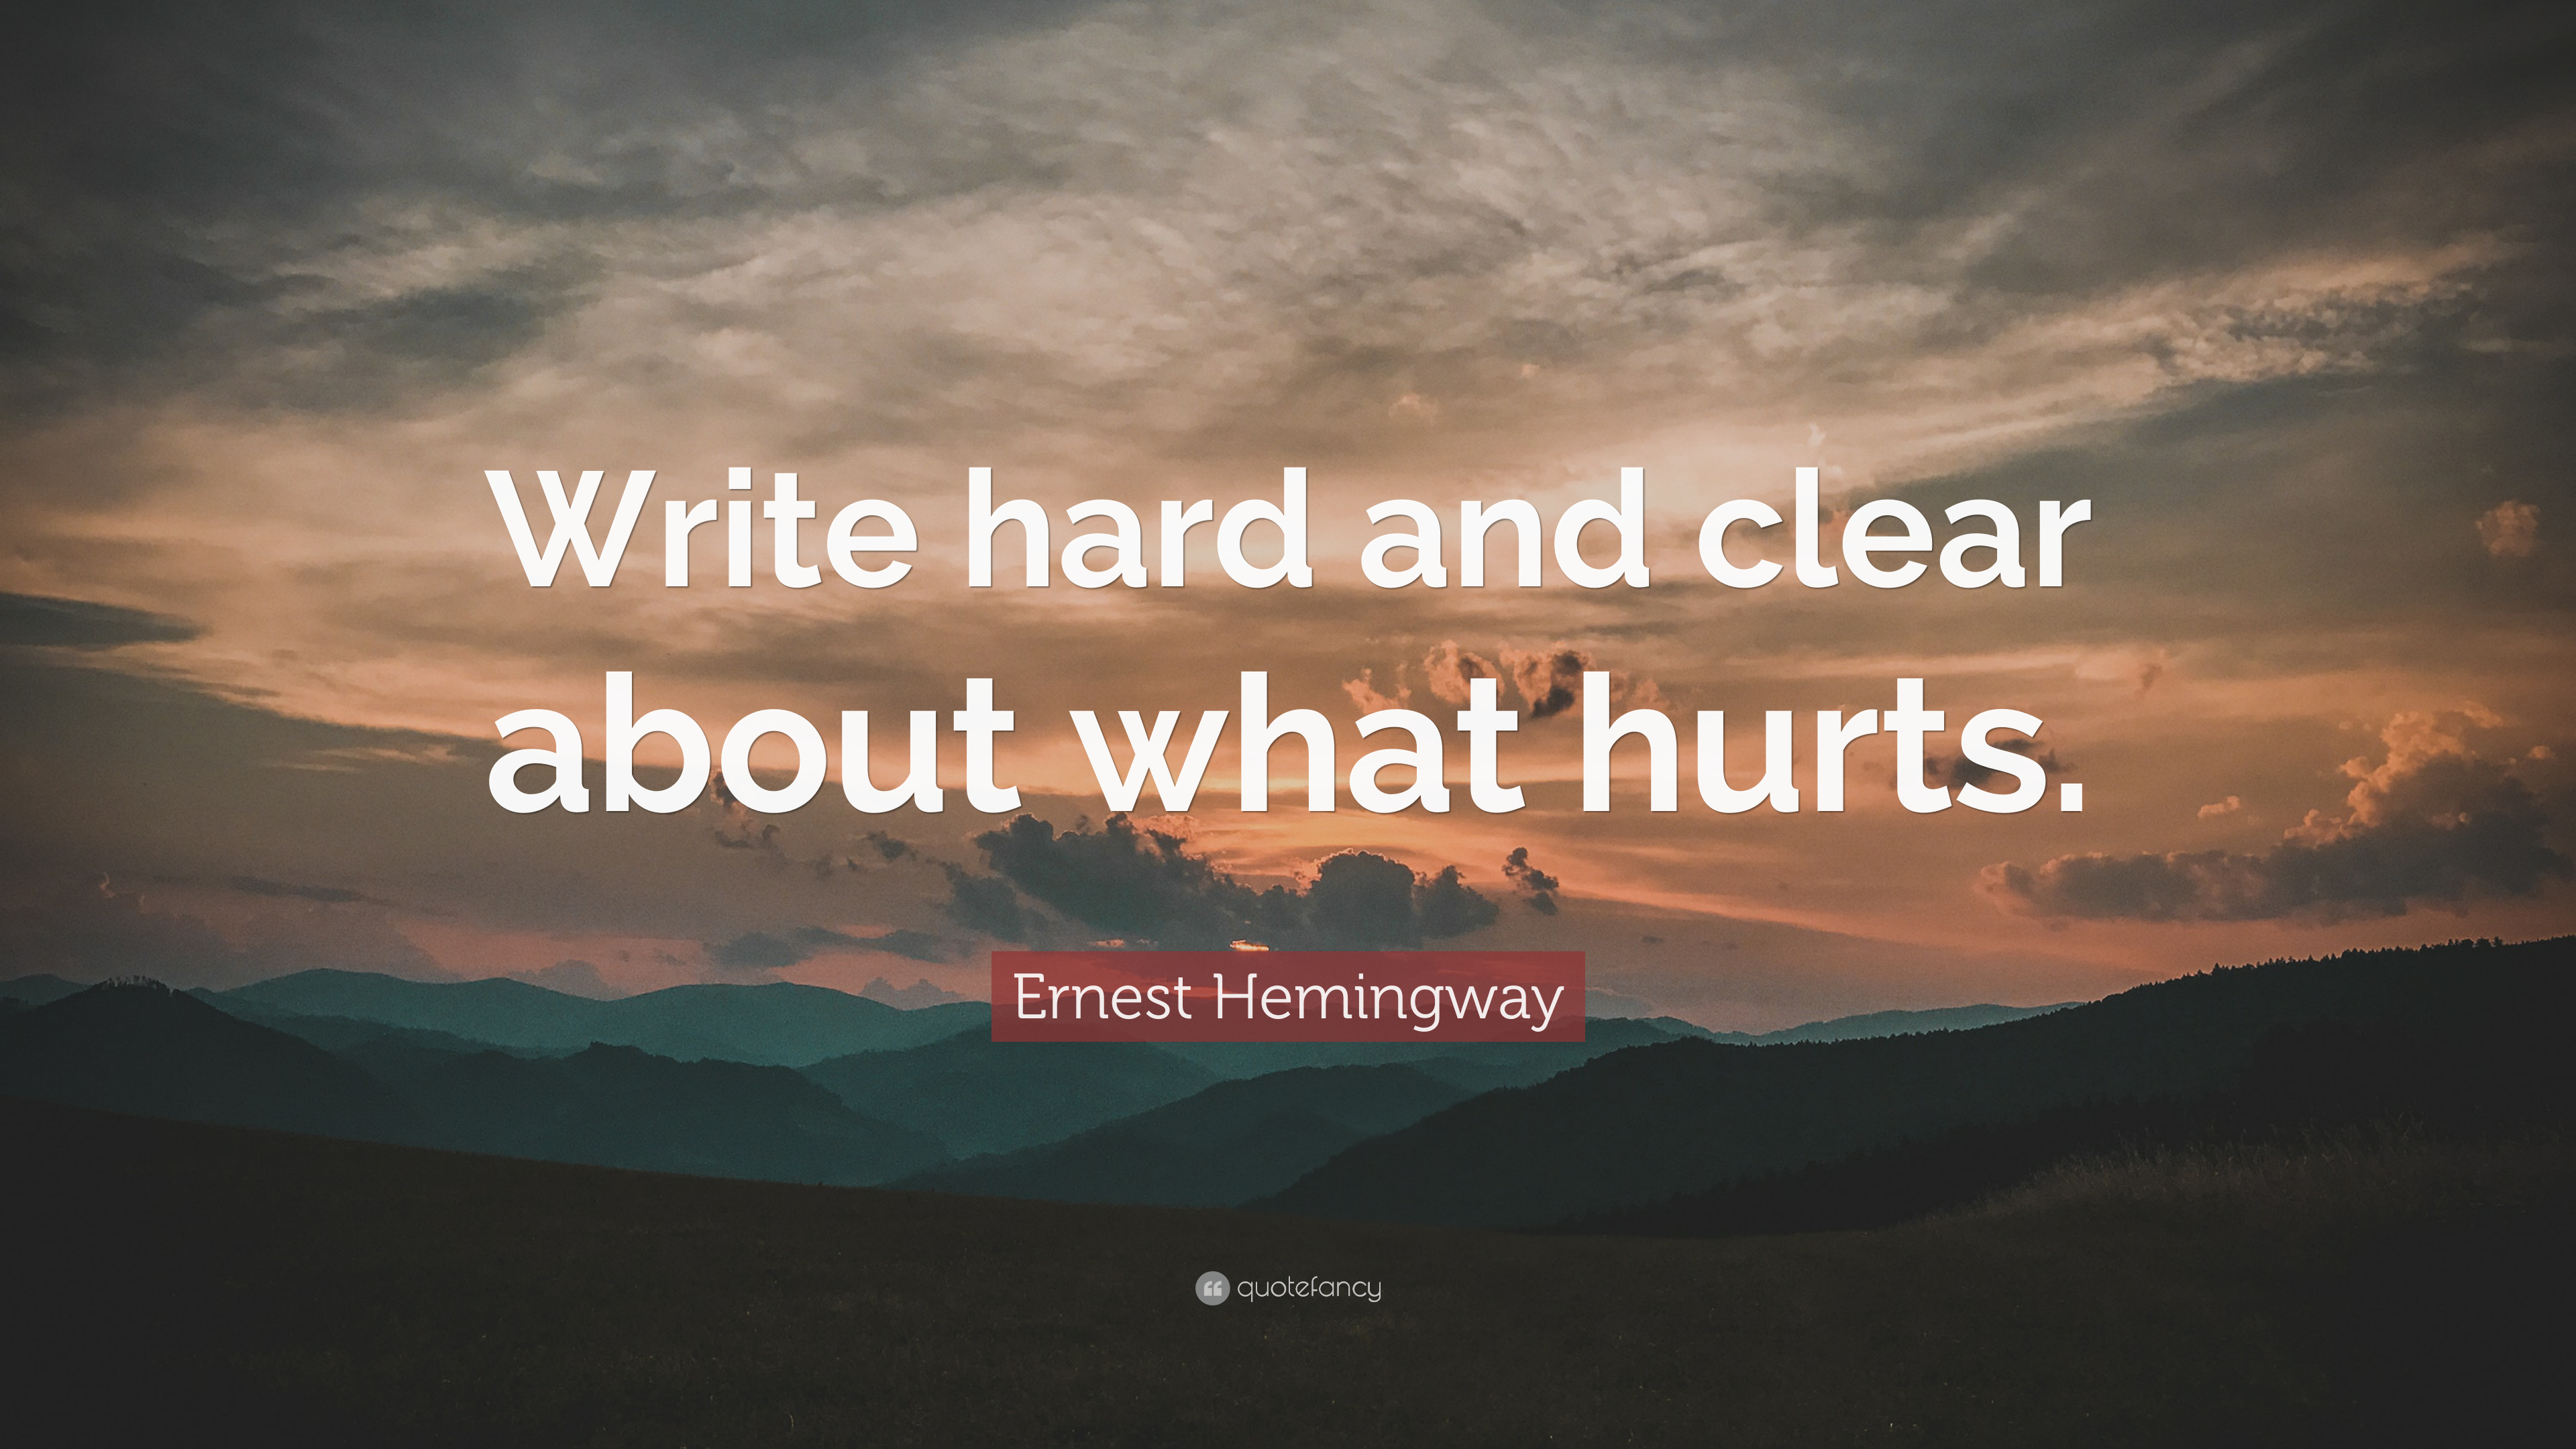 """Ernest Hemingway Quote: """"Write hard and clear about what hurts. """" (22  wallpapers) - Quotefancy"""